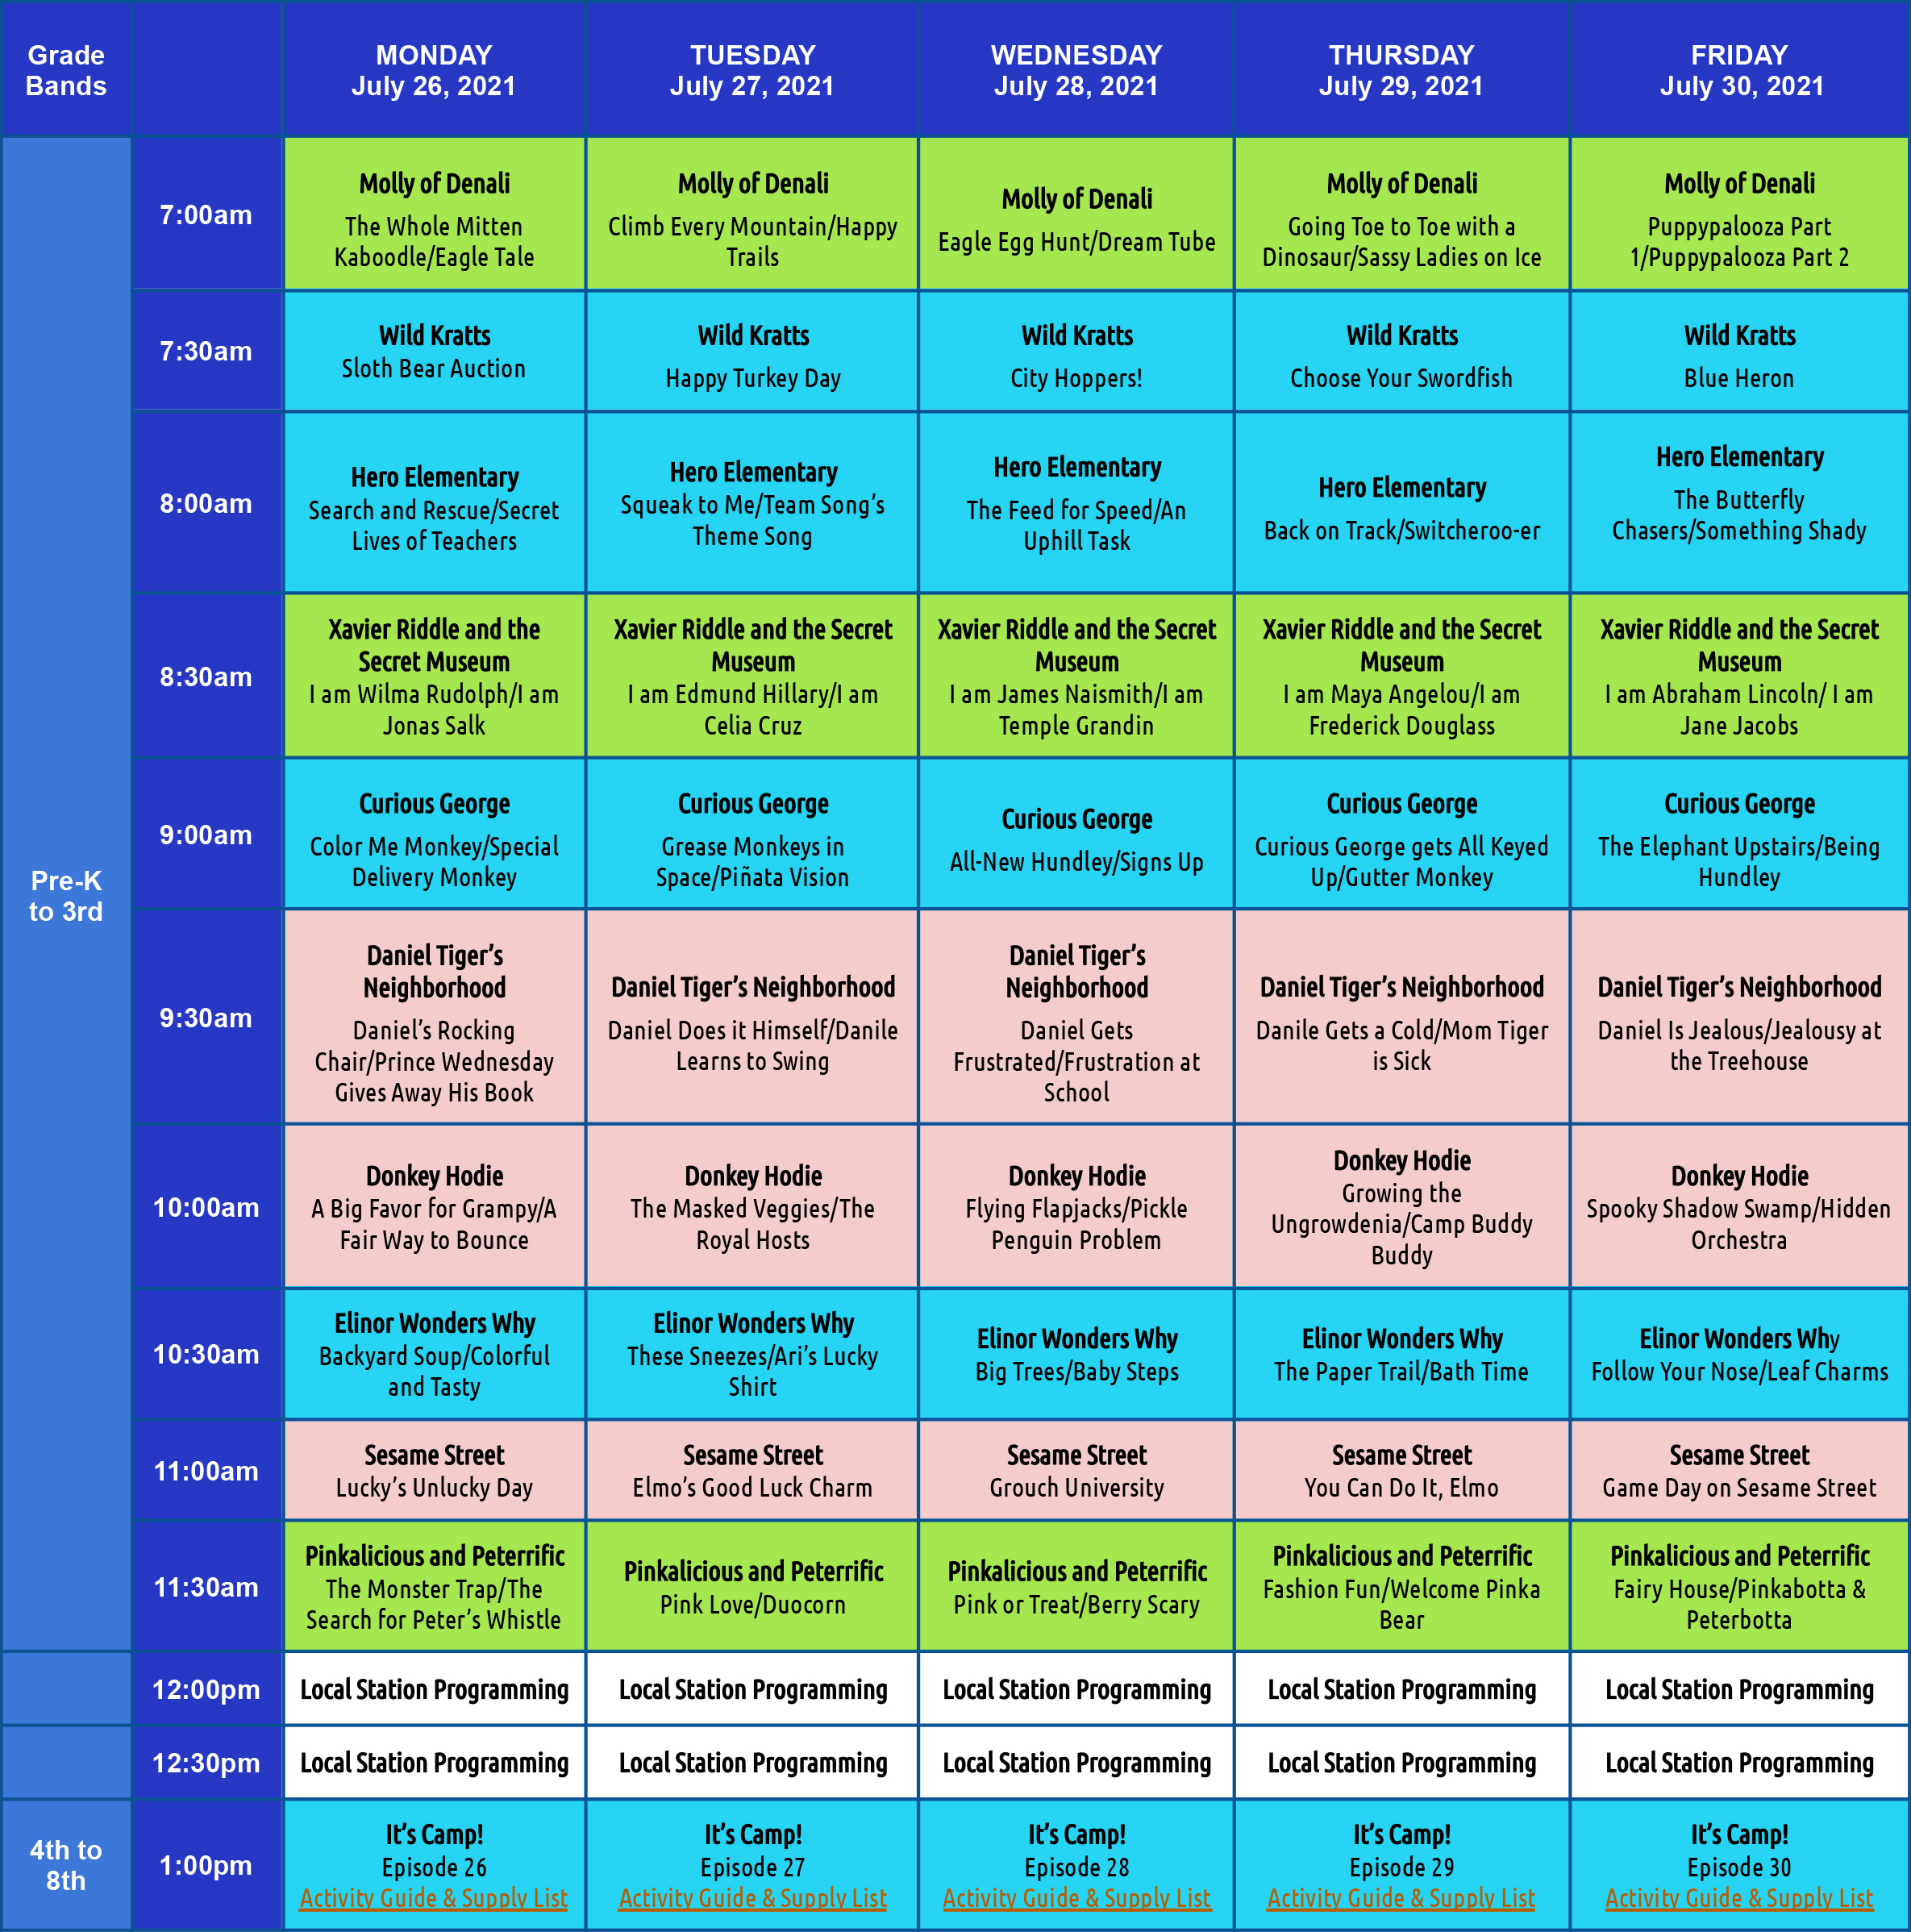 WHYY PBS Learning at Home TV Schedule for Monday, July 26 - Friday, July 30